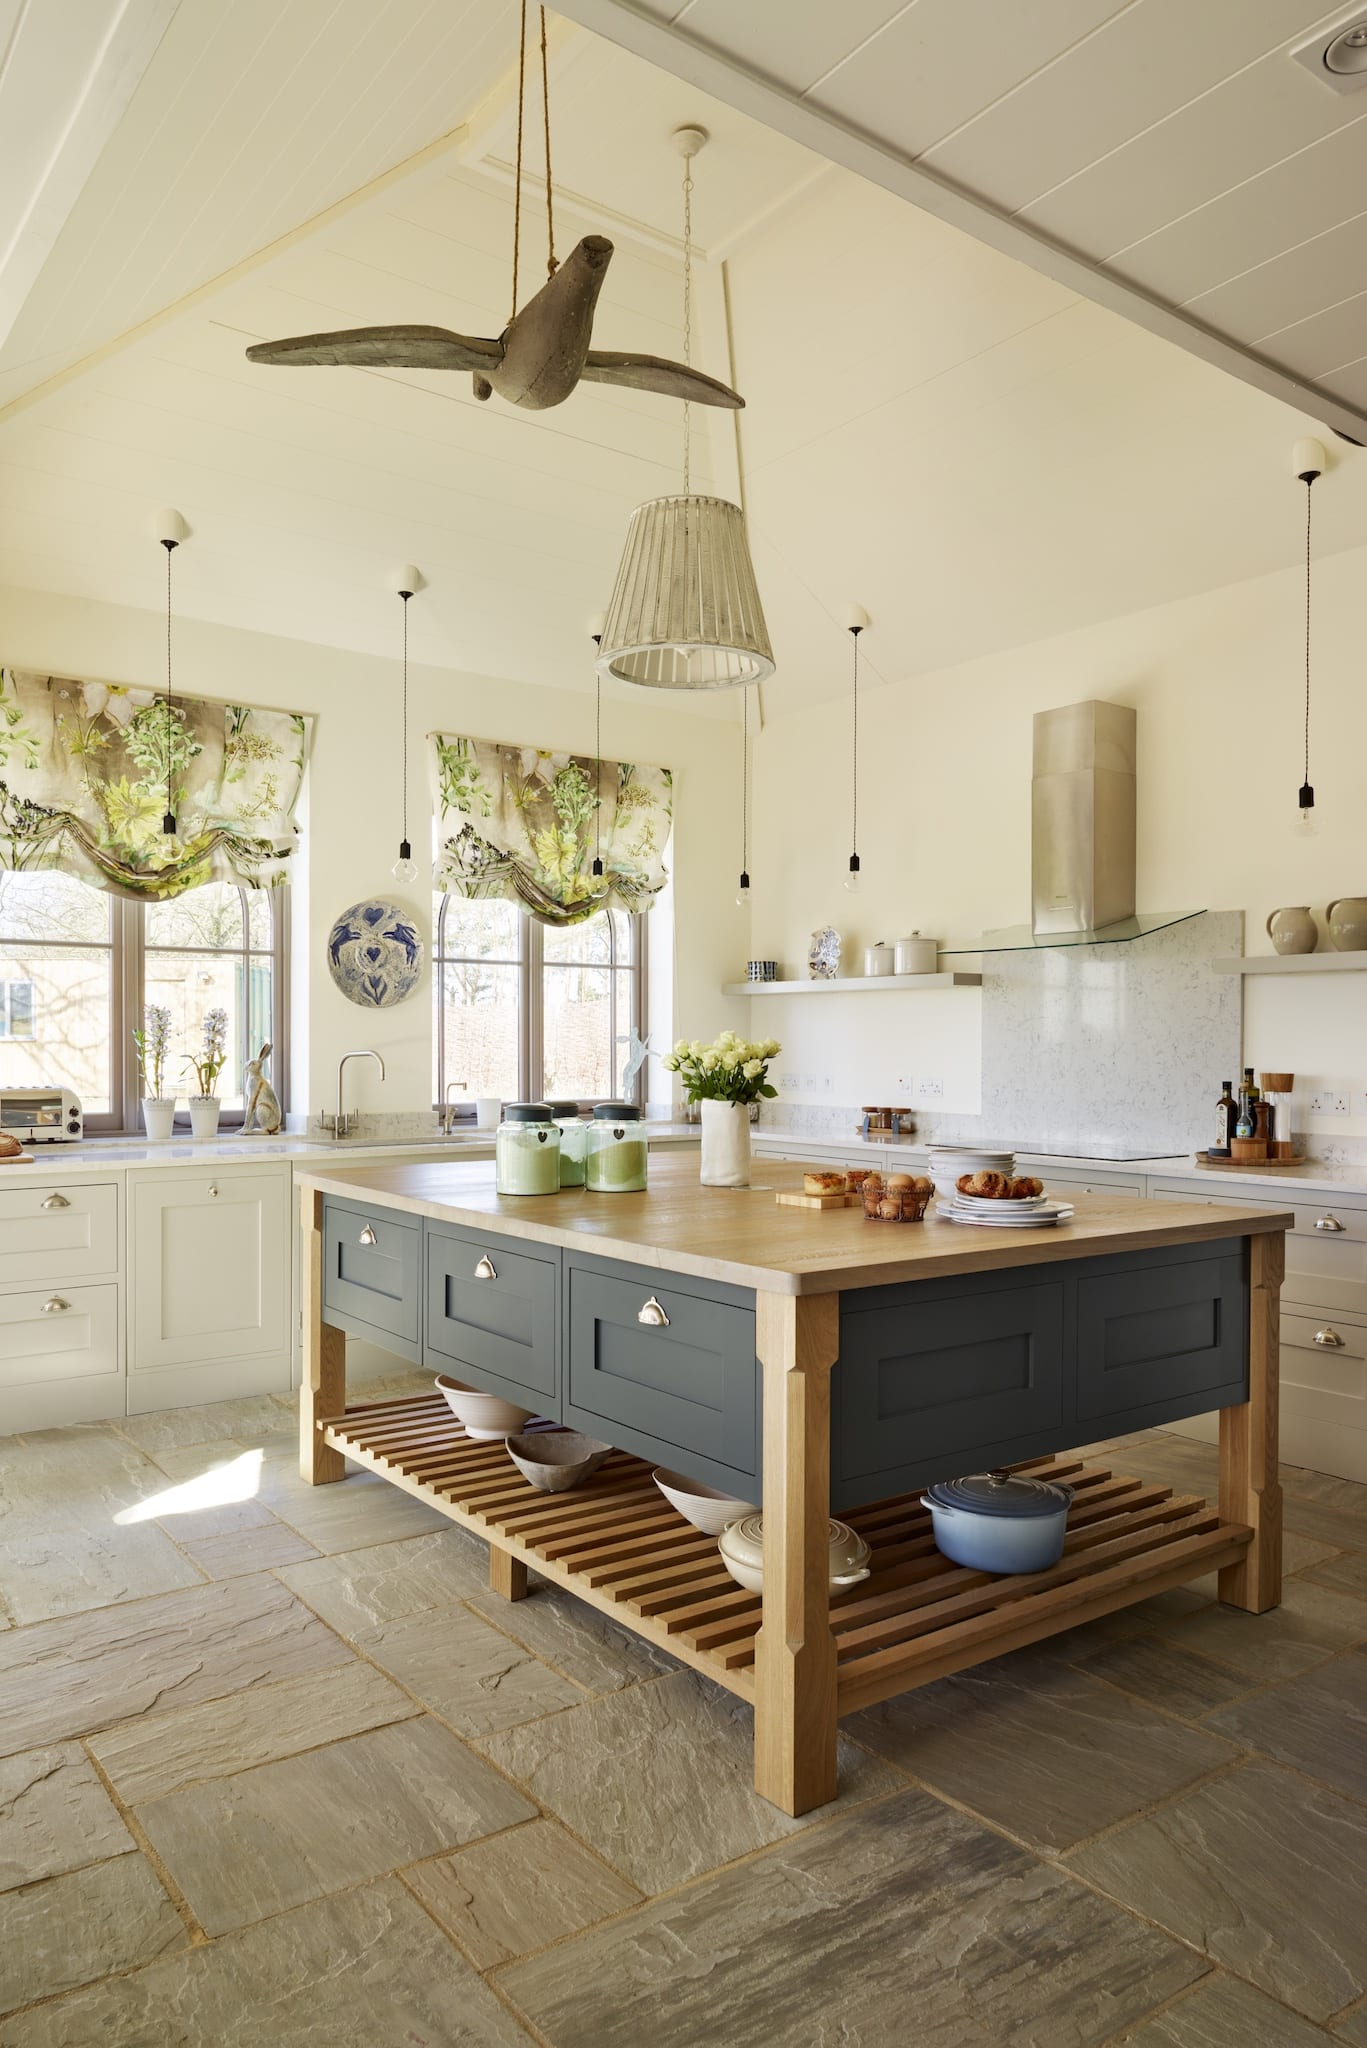 Taking centre stage planning the perfect kitchen island